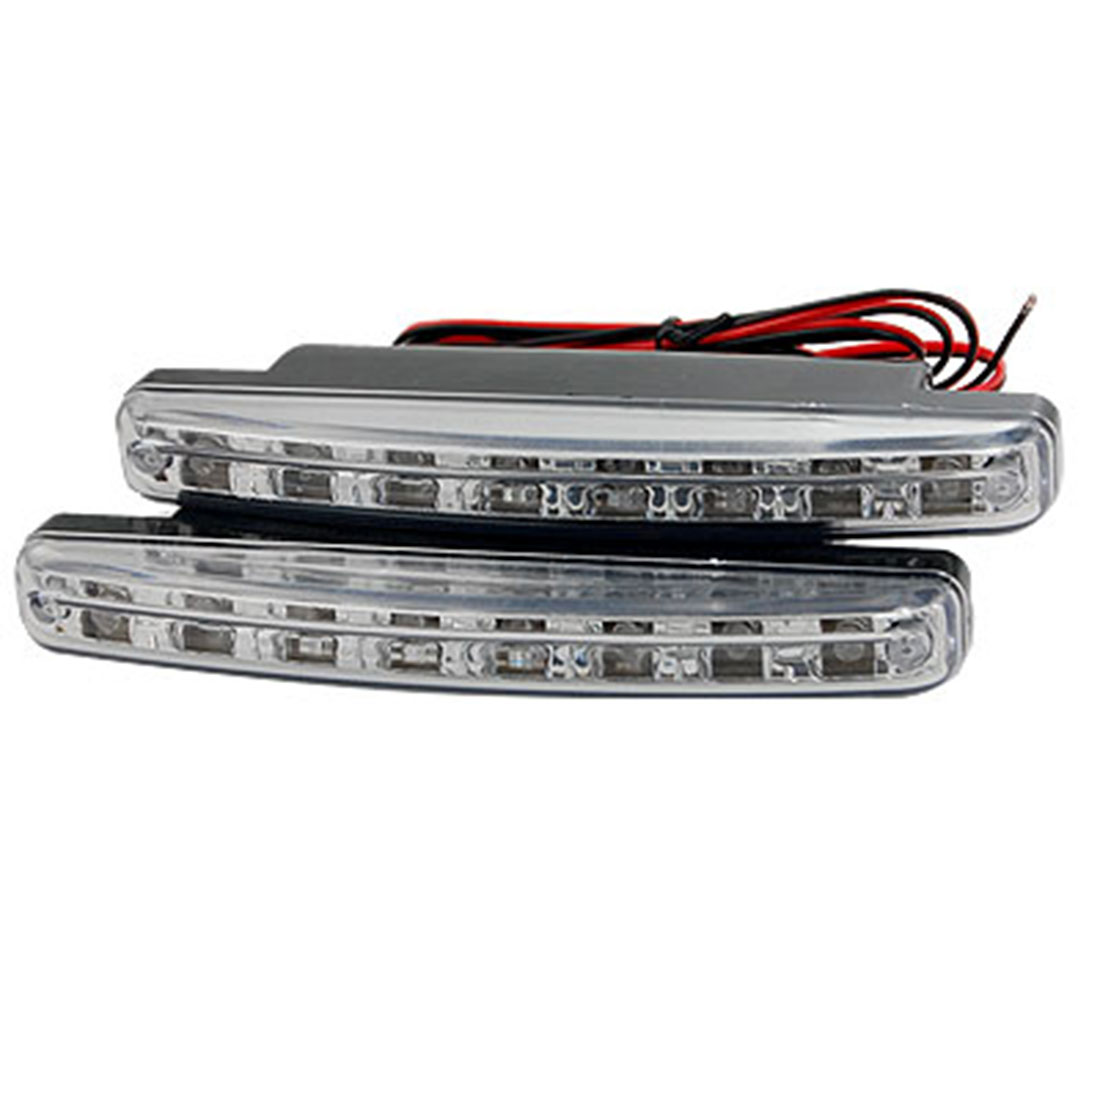 2 Pcs 0.3W 8 LEDs Daytime Running Light Lamp for Car Vehicle